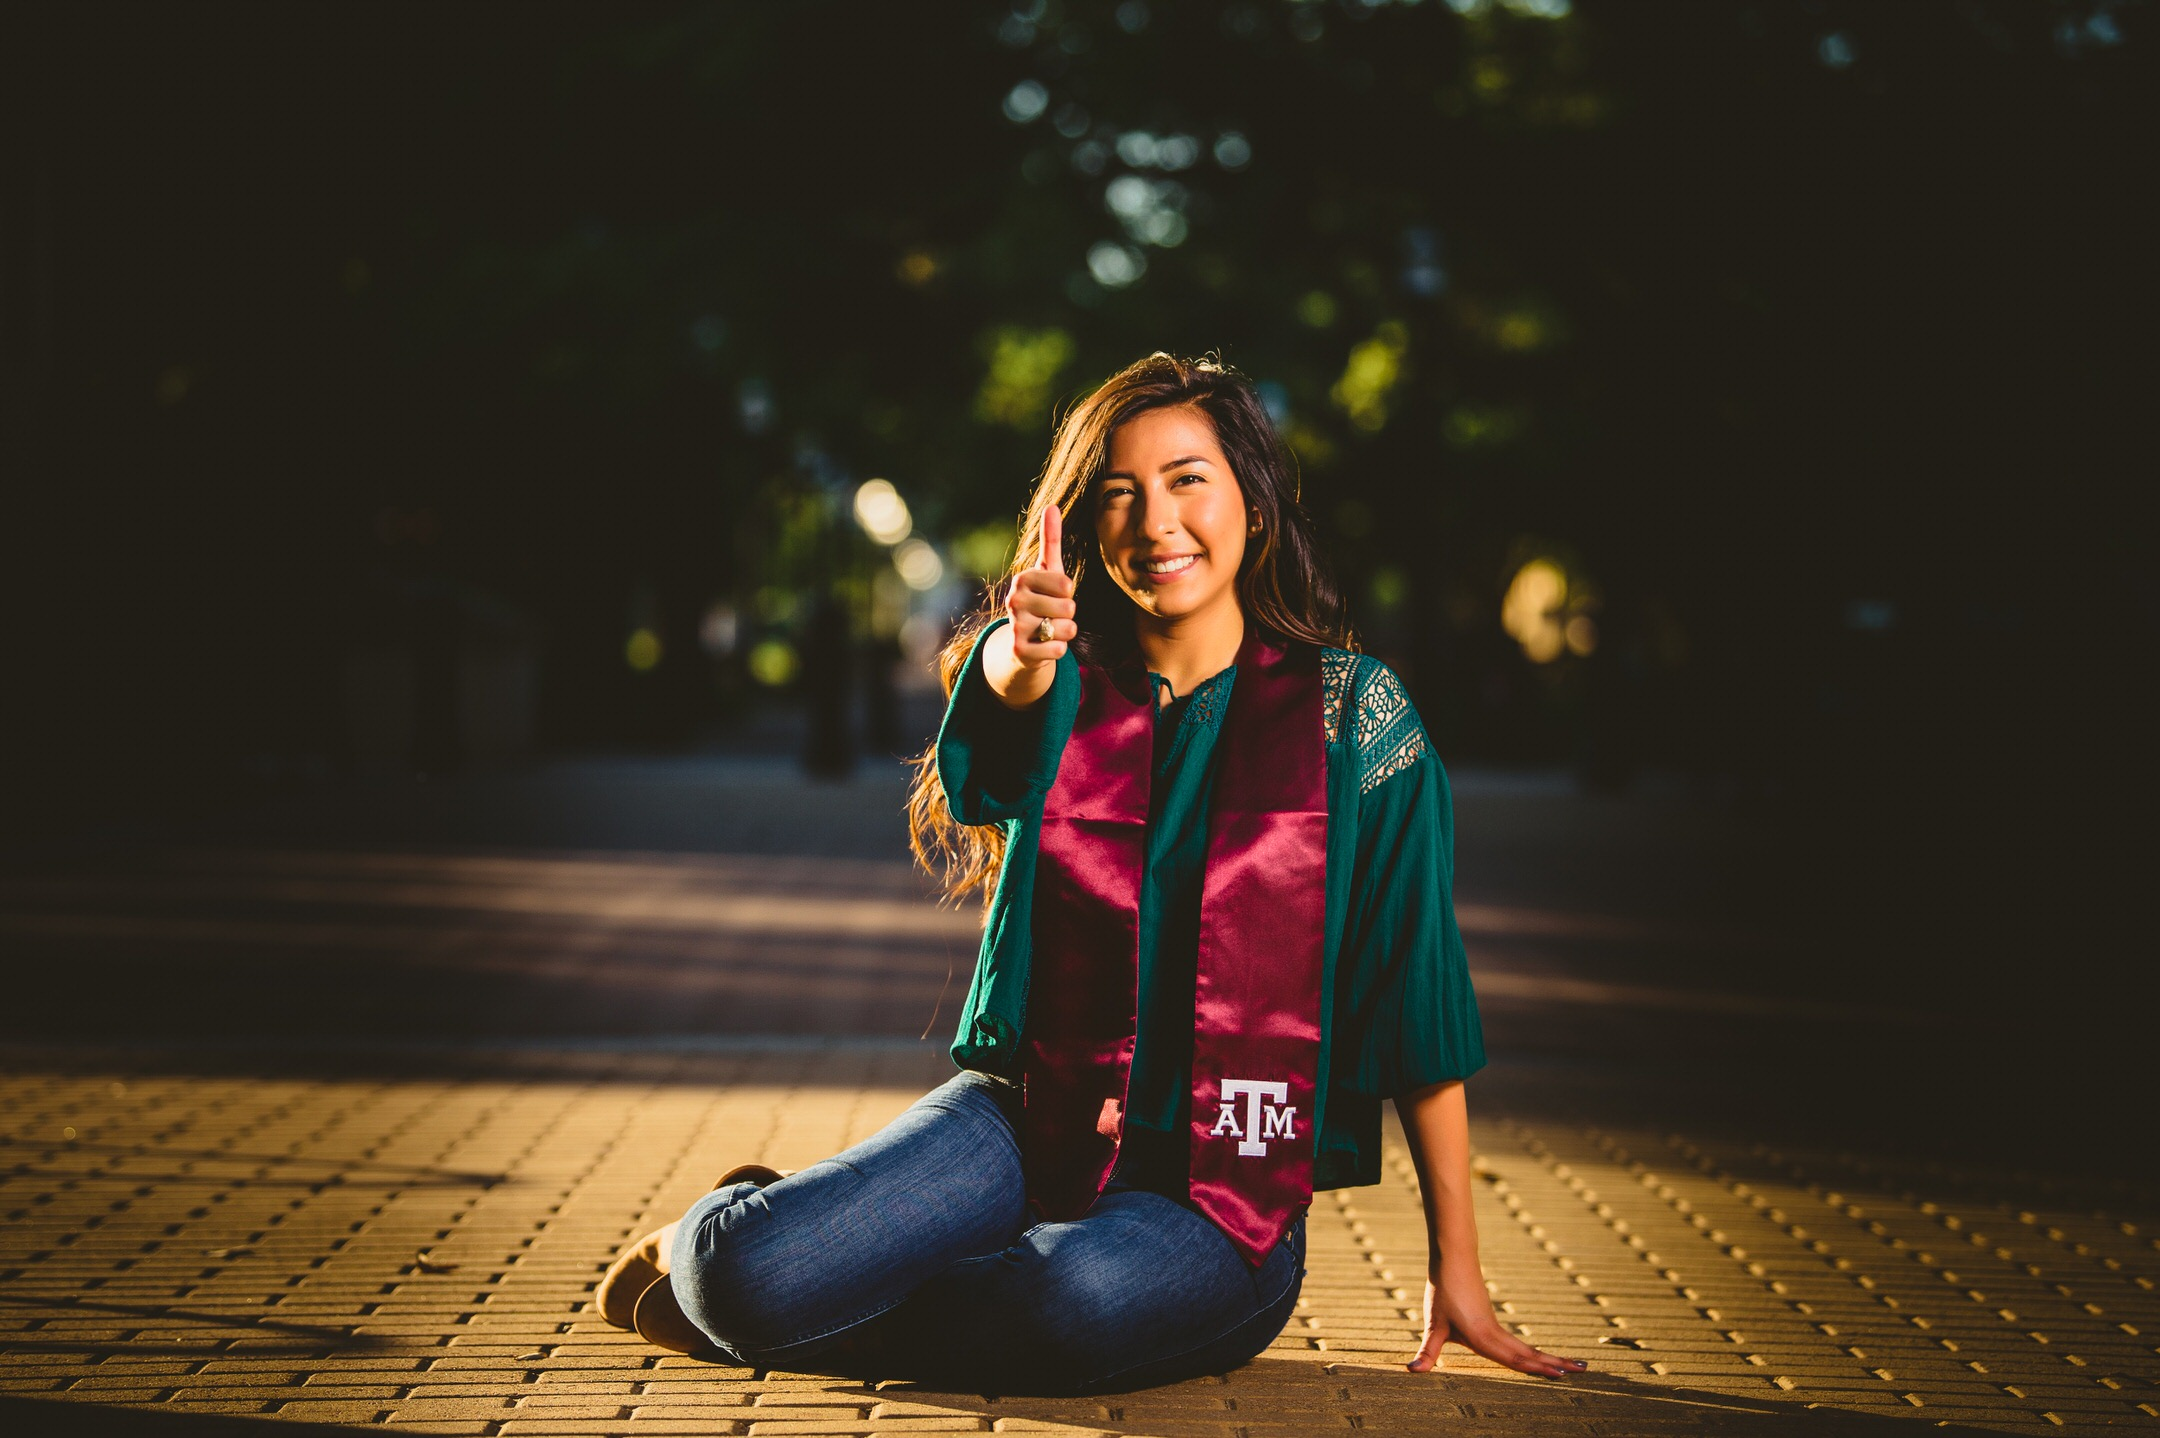 Leon-Contreras-College-Station-Texas-Aggie-Wedding-Portrait-4356.jpg